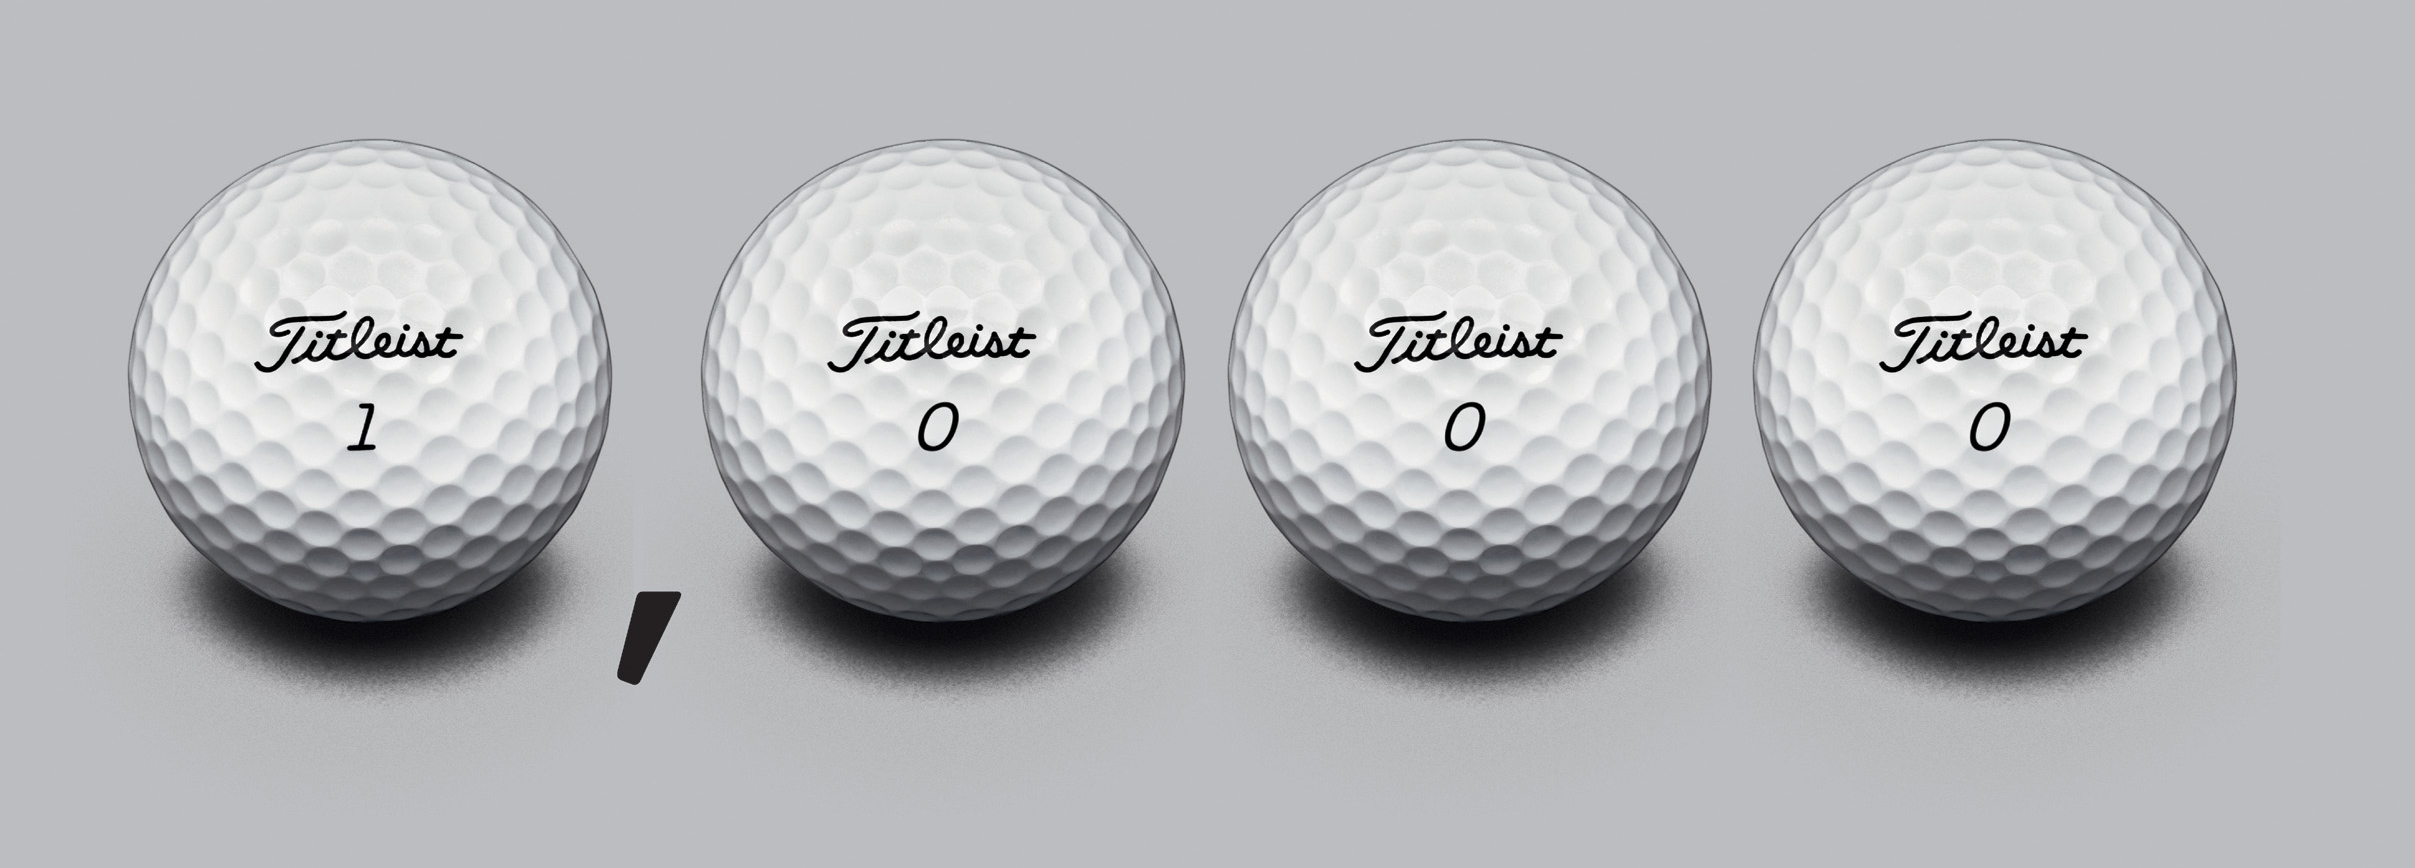 Titleist Pro V1 ball celebrates its 1,000th win in 2007 (Photo: Titleist)